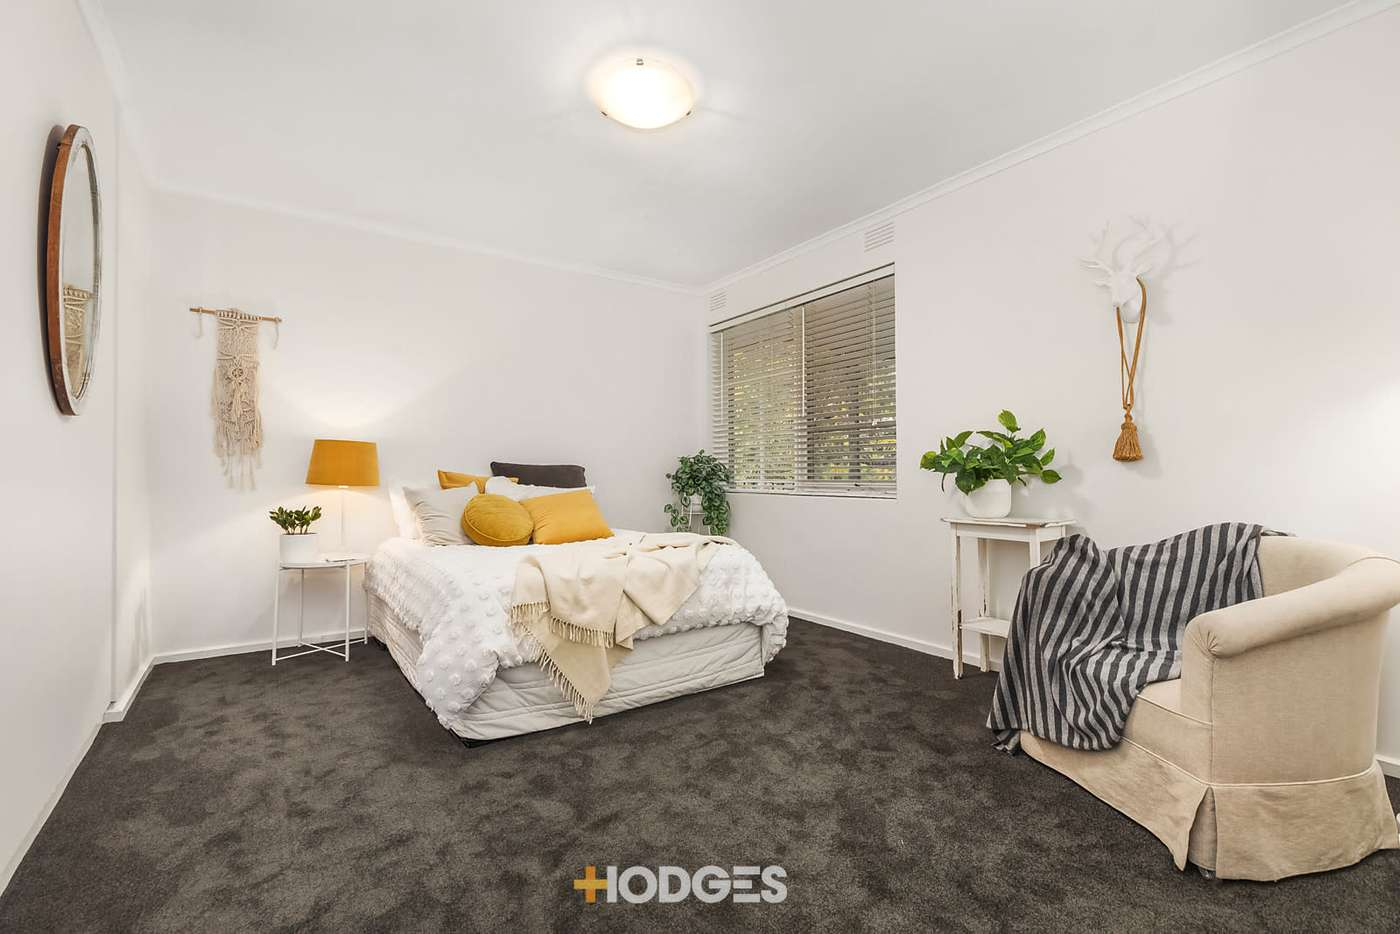 Fifth view of Homely apartment listing, 10/9 Park Avenue, Glen Huntly VIC 3163